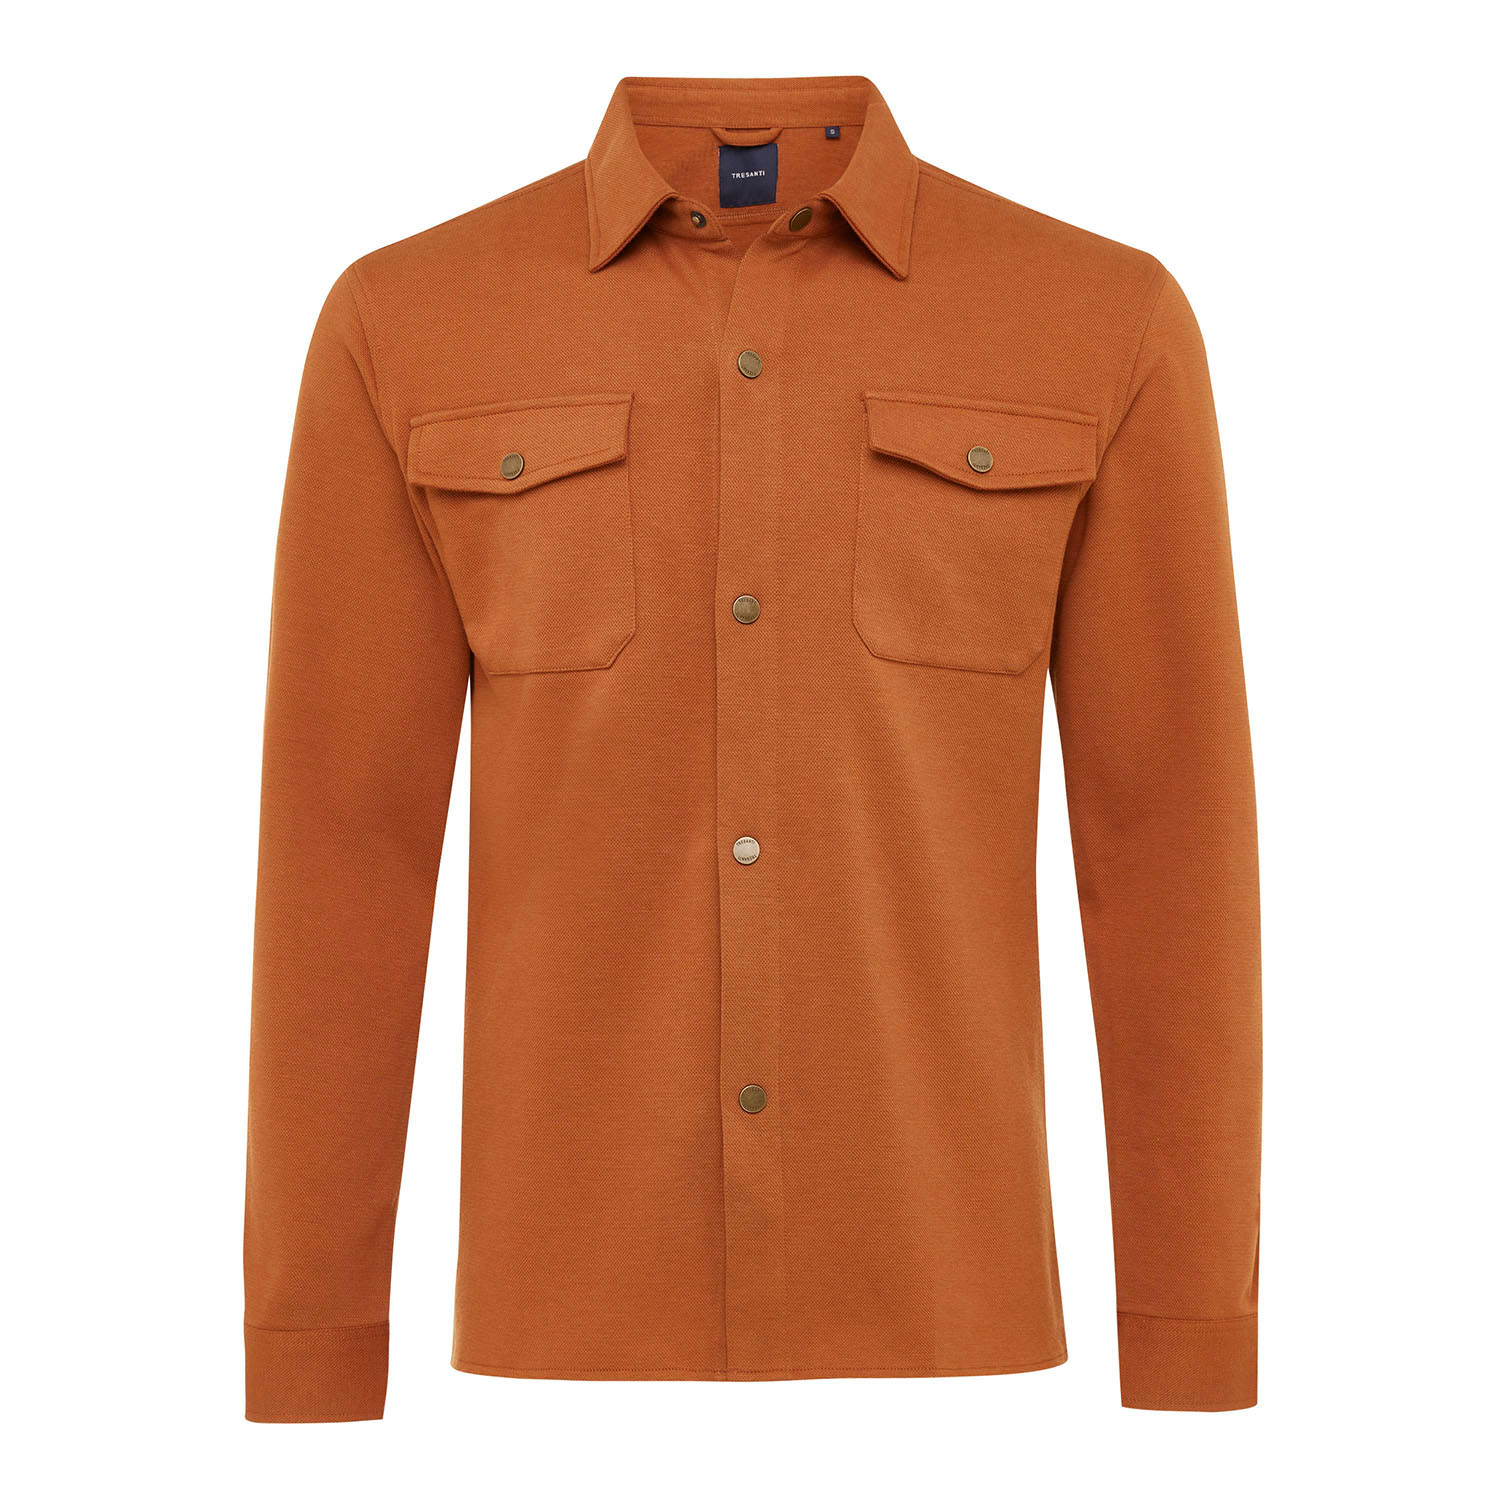 ELEVEN | Jersey overshirt with button closure cognac